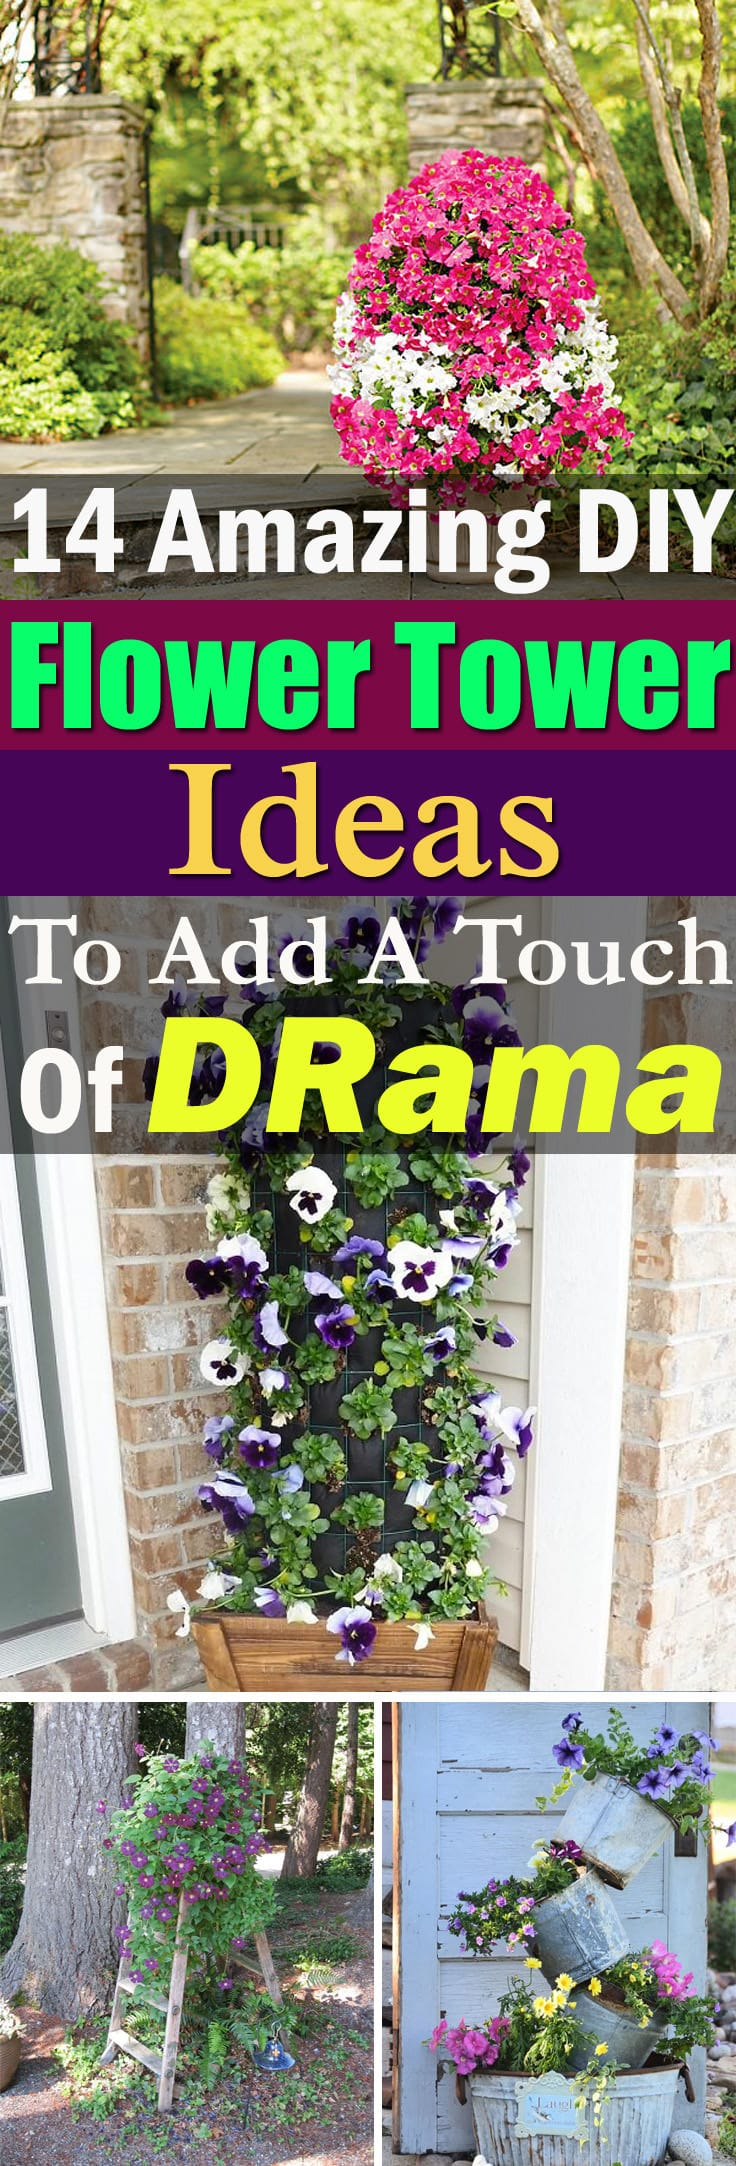 Even if you're not a limited space gardener, these DIY Flower Tower ideas are a perfect way to add a touch of drama to your home or garden!